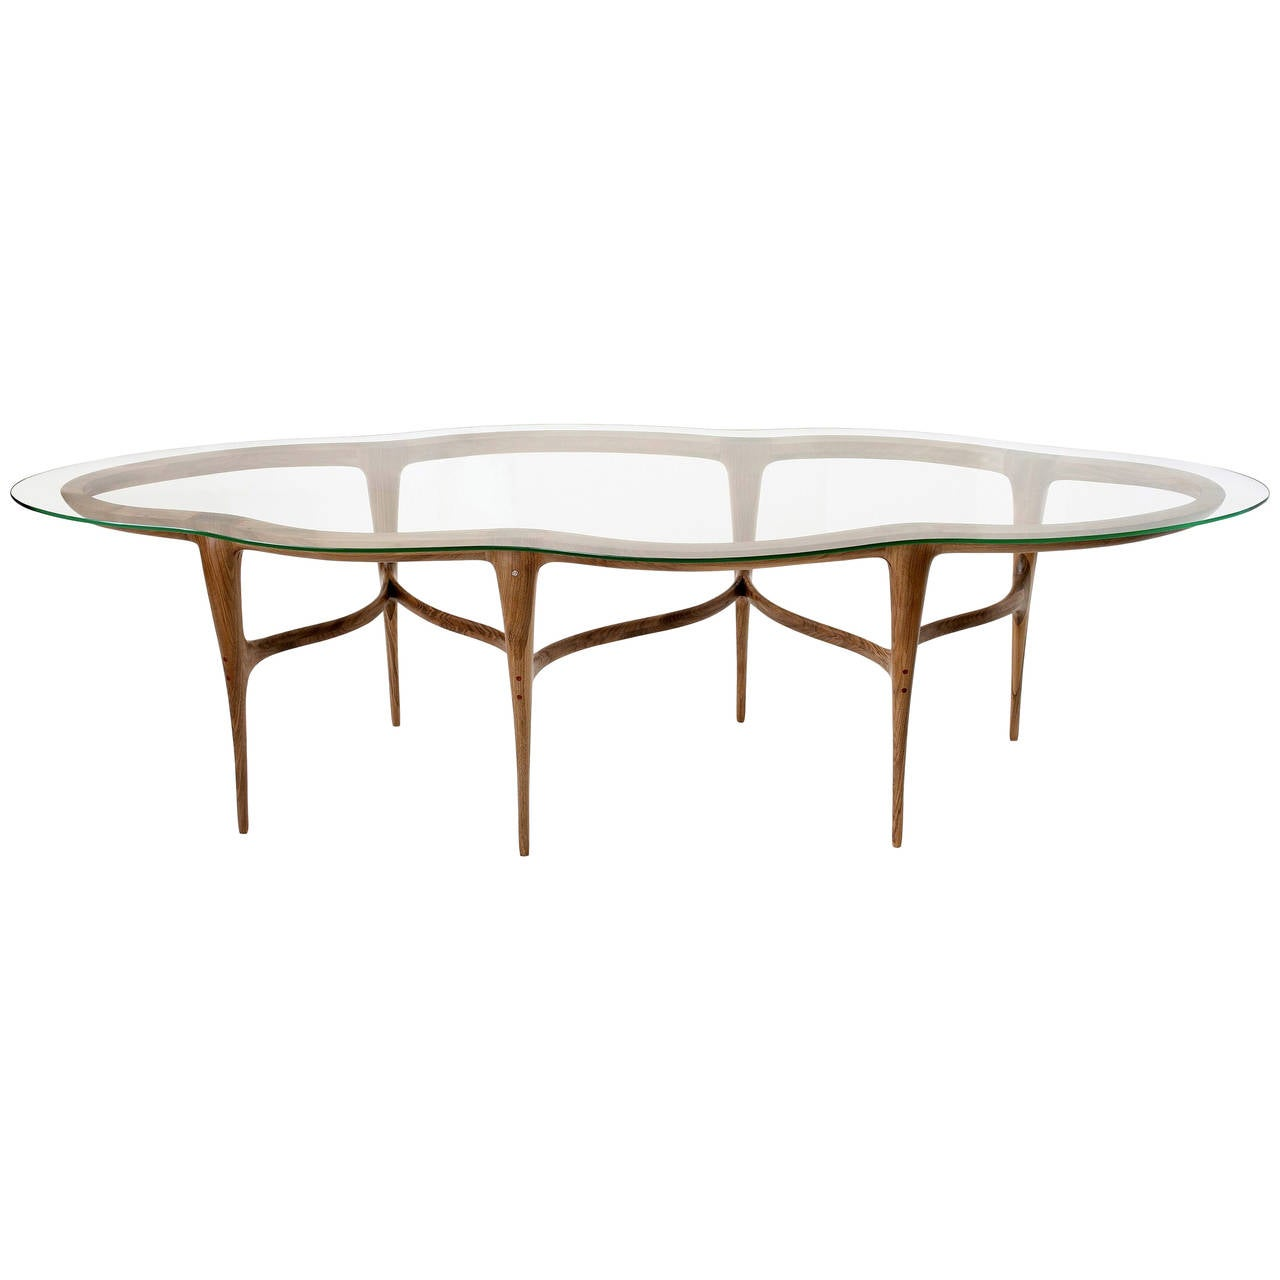 Limited edition dining table by ask emil skovgaard for for Limited space dining table